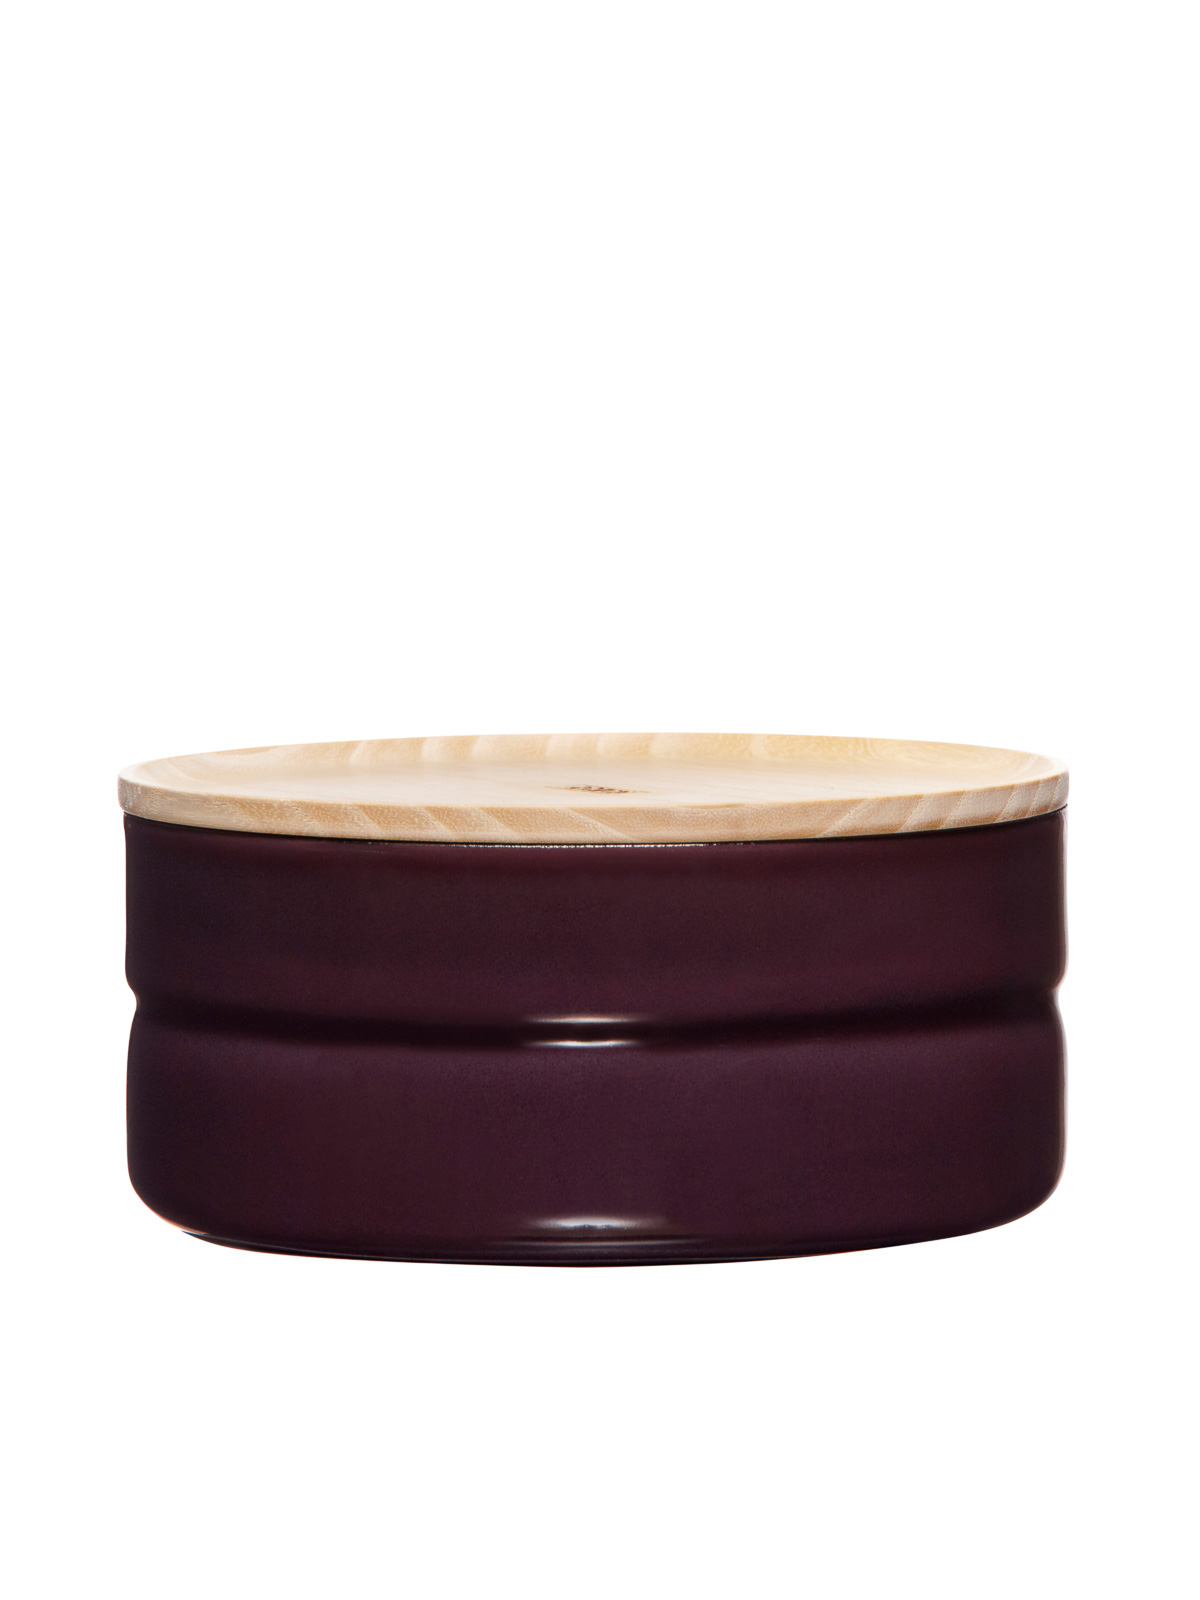 storage container aubergine 615 ml (2173-201)